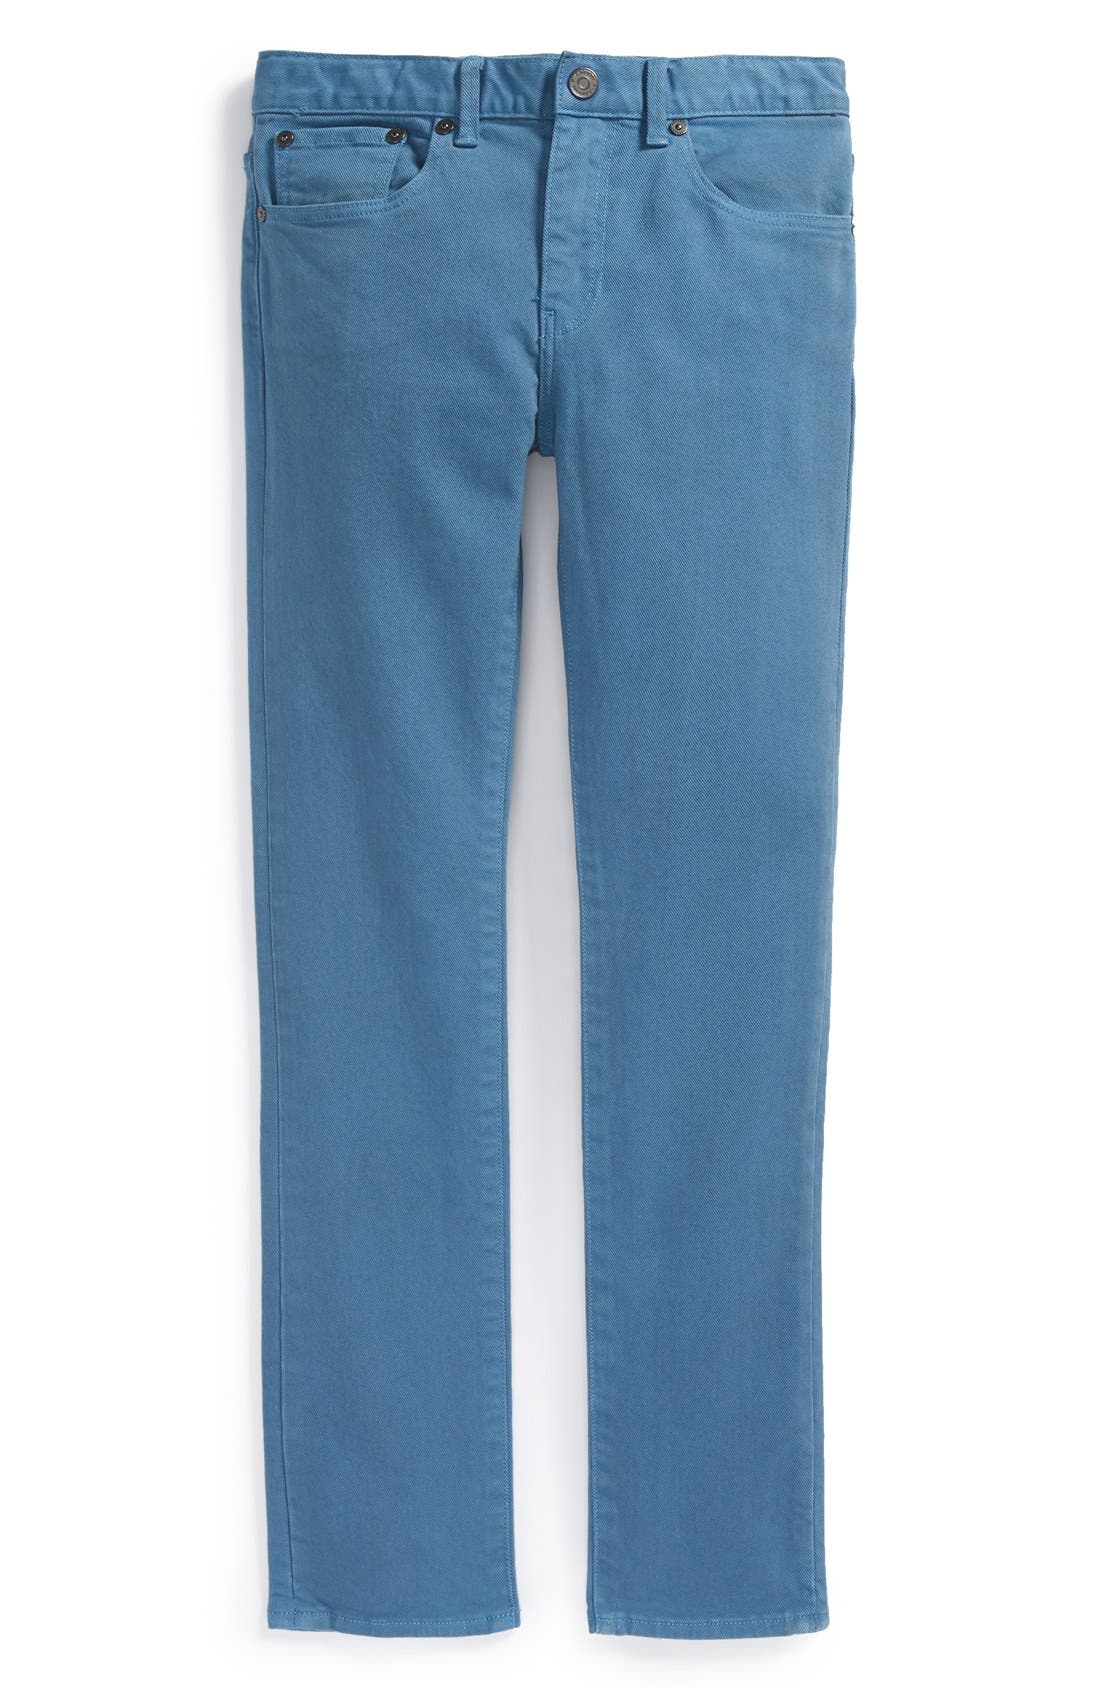 Burberry Skinny Straight Leg Jeans (Little Boys & Big Boys)